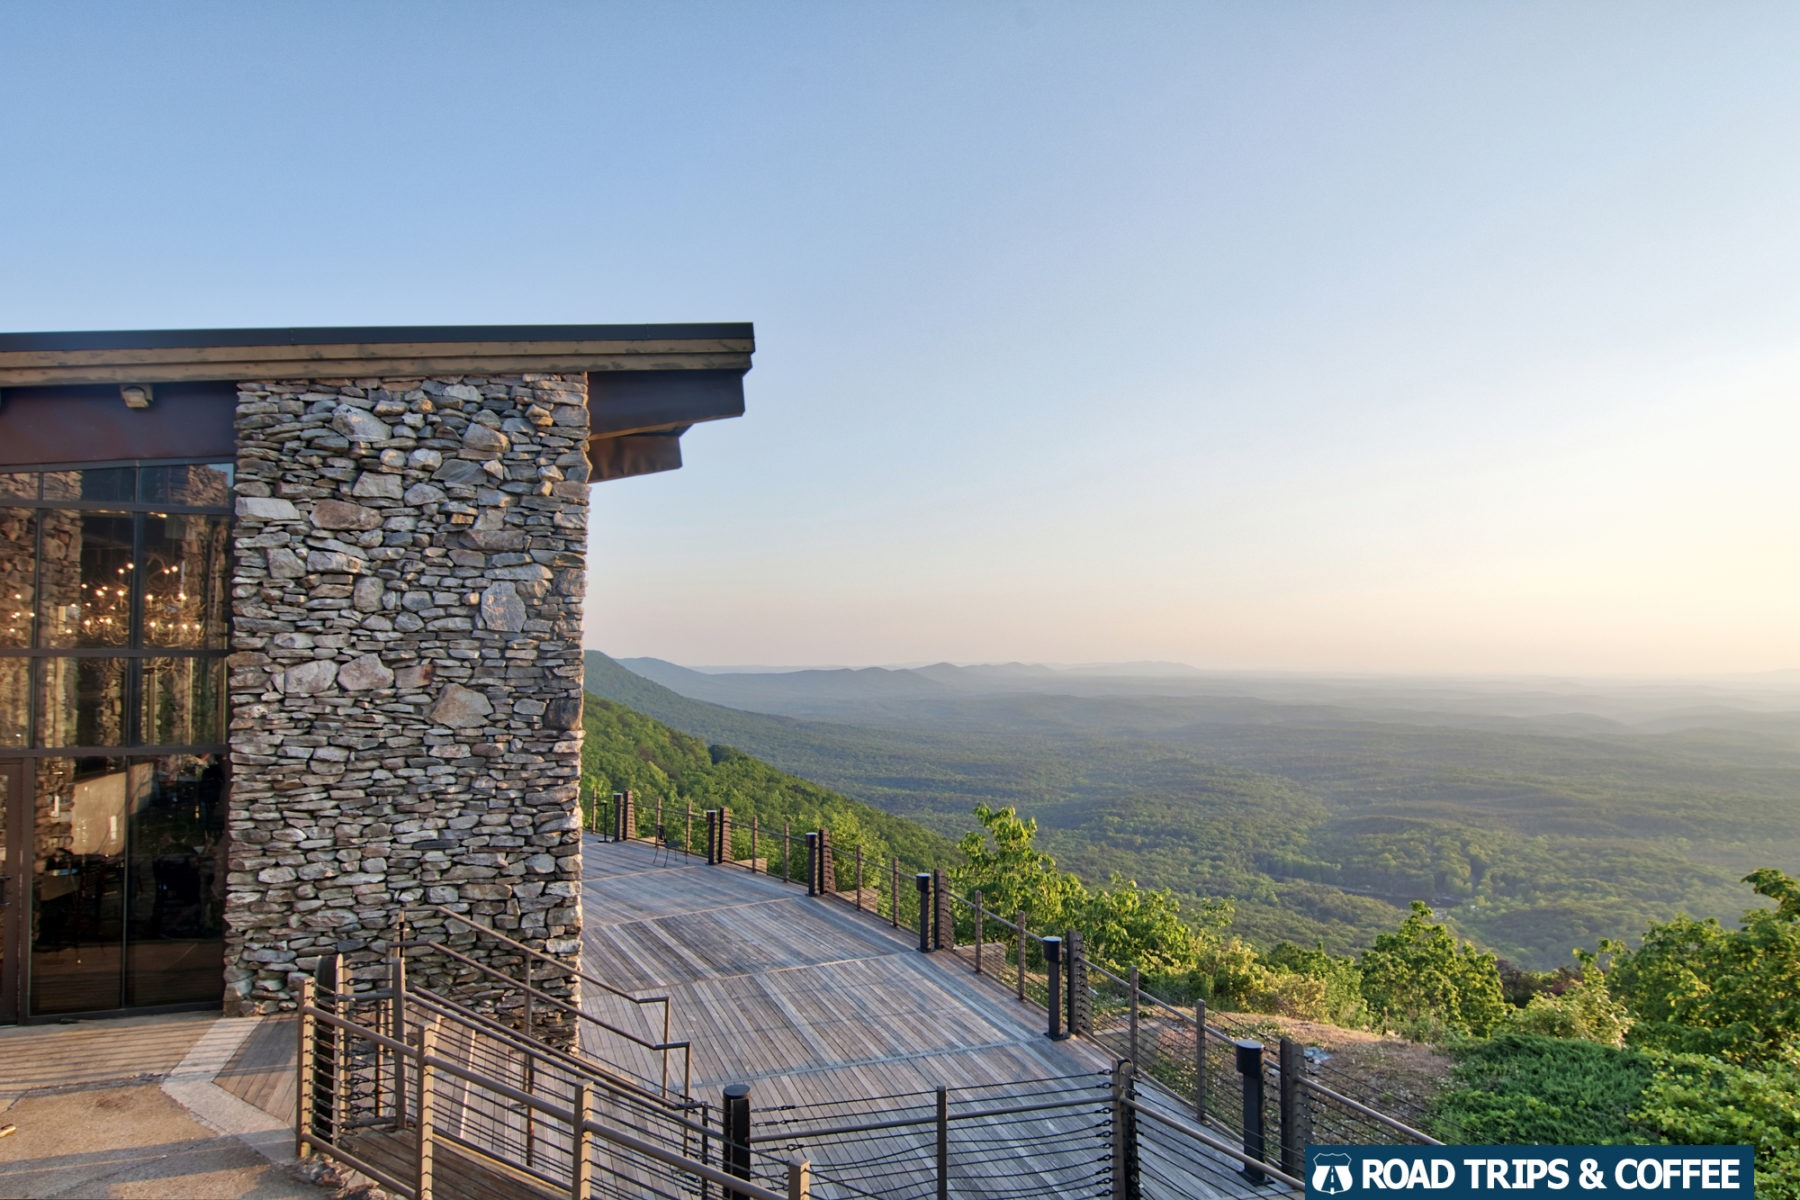 Discovering Alabama's Highest Point at Cheaha State Park ... on chehaw park campground map, alabama state map, mt. cheaha map, forest park hiking trails map, mount cheaha trail map, cheaha mountain hiking trail map, blauvelt state park trail map,